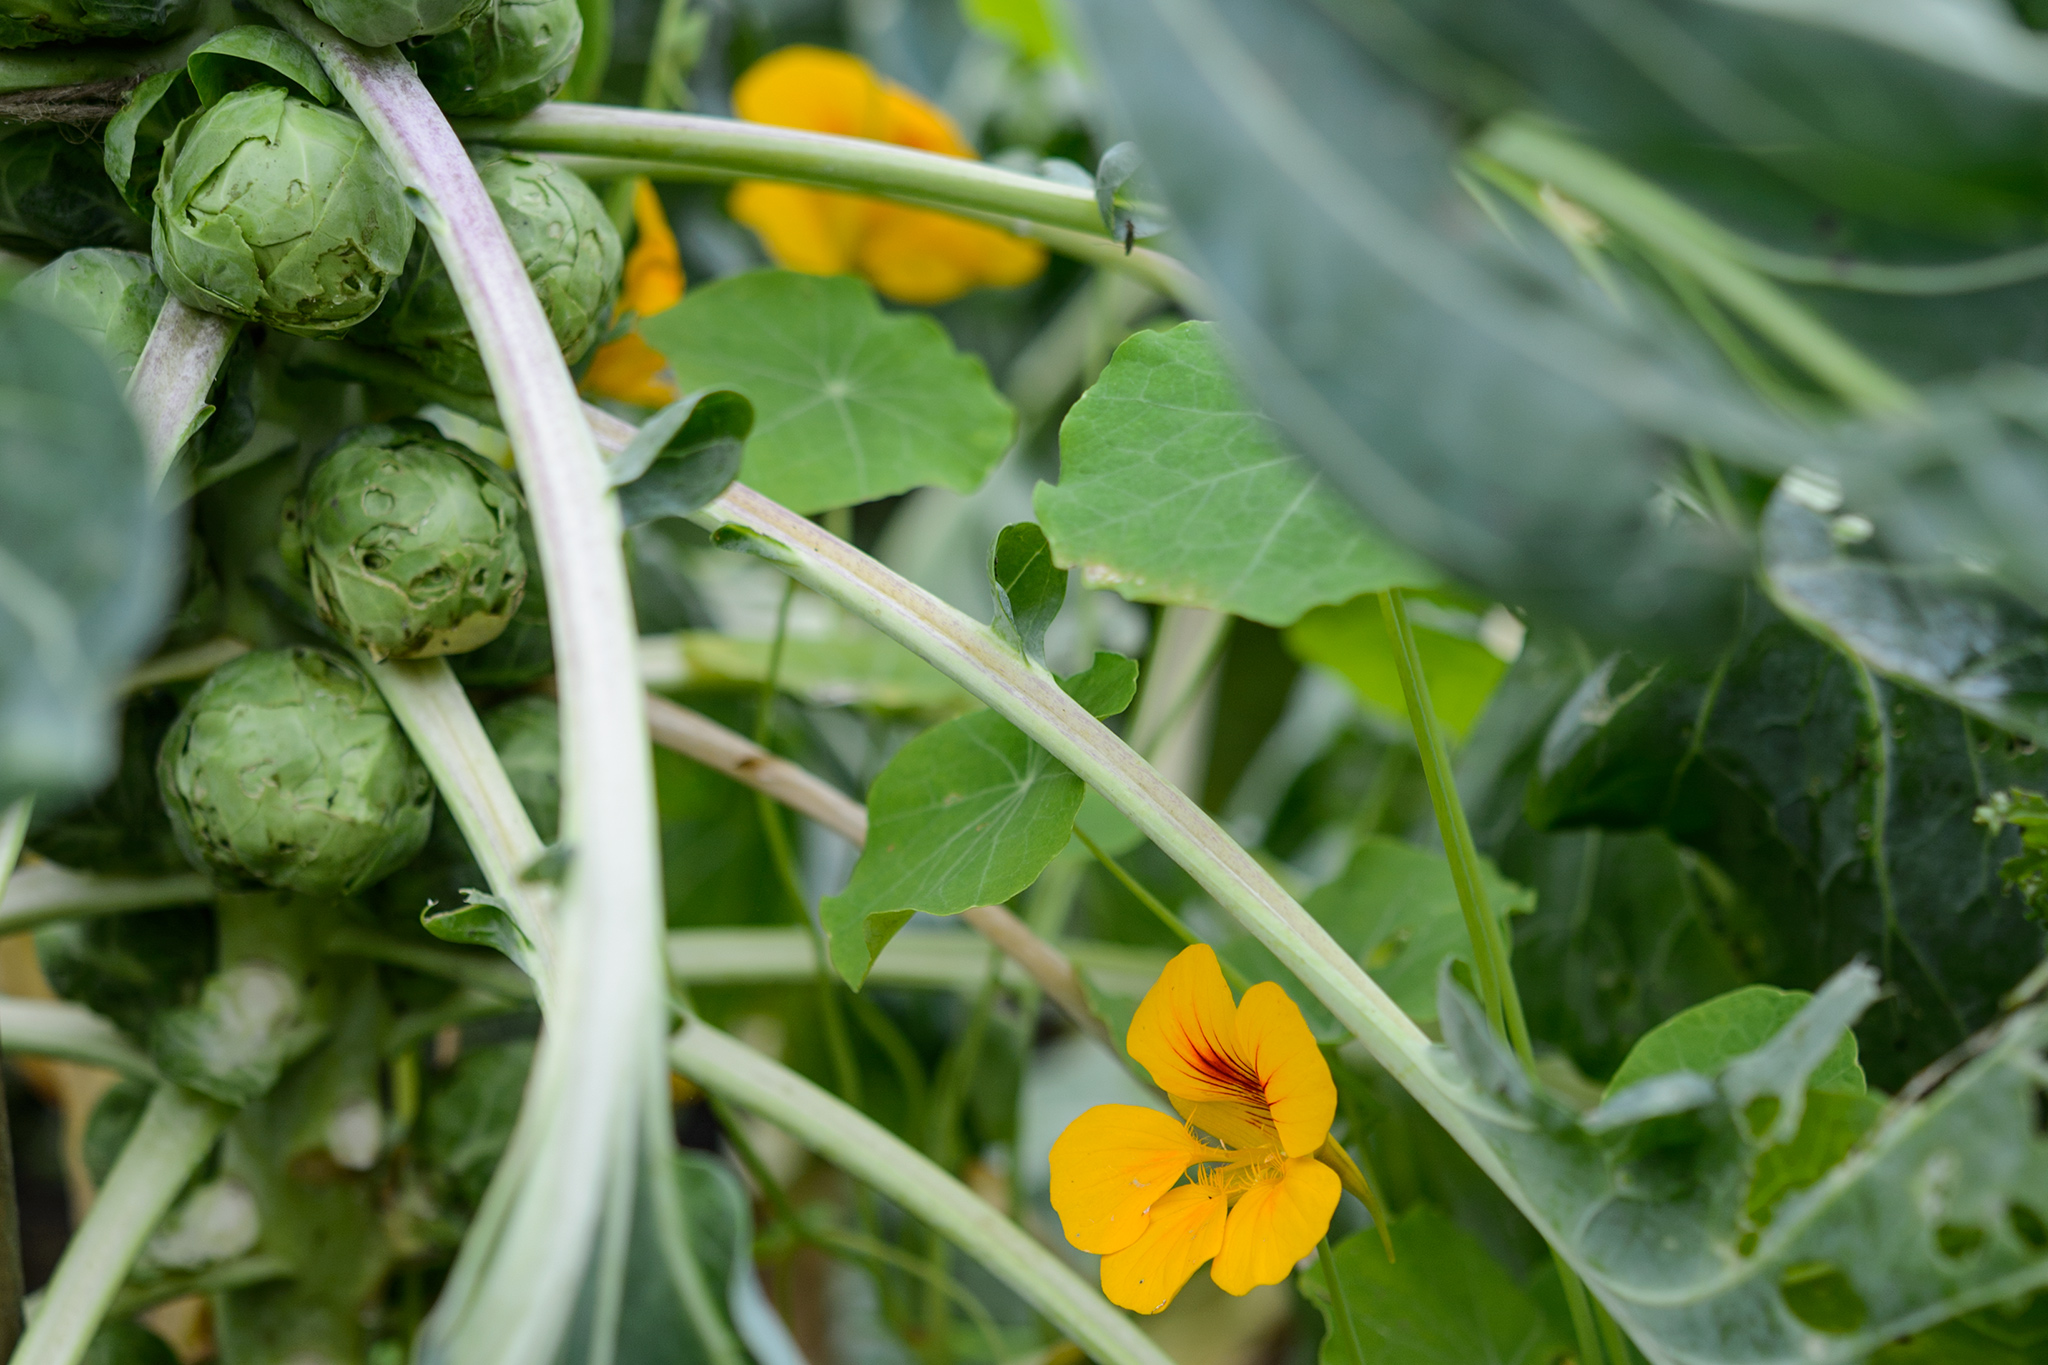 brussels-sprouts-and-nasturtiums-2